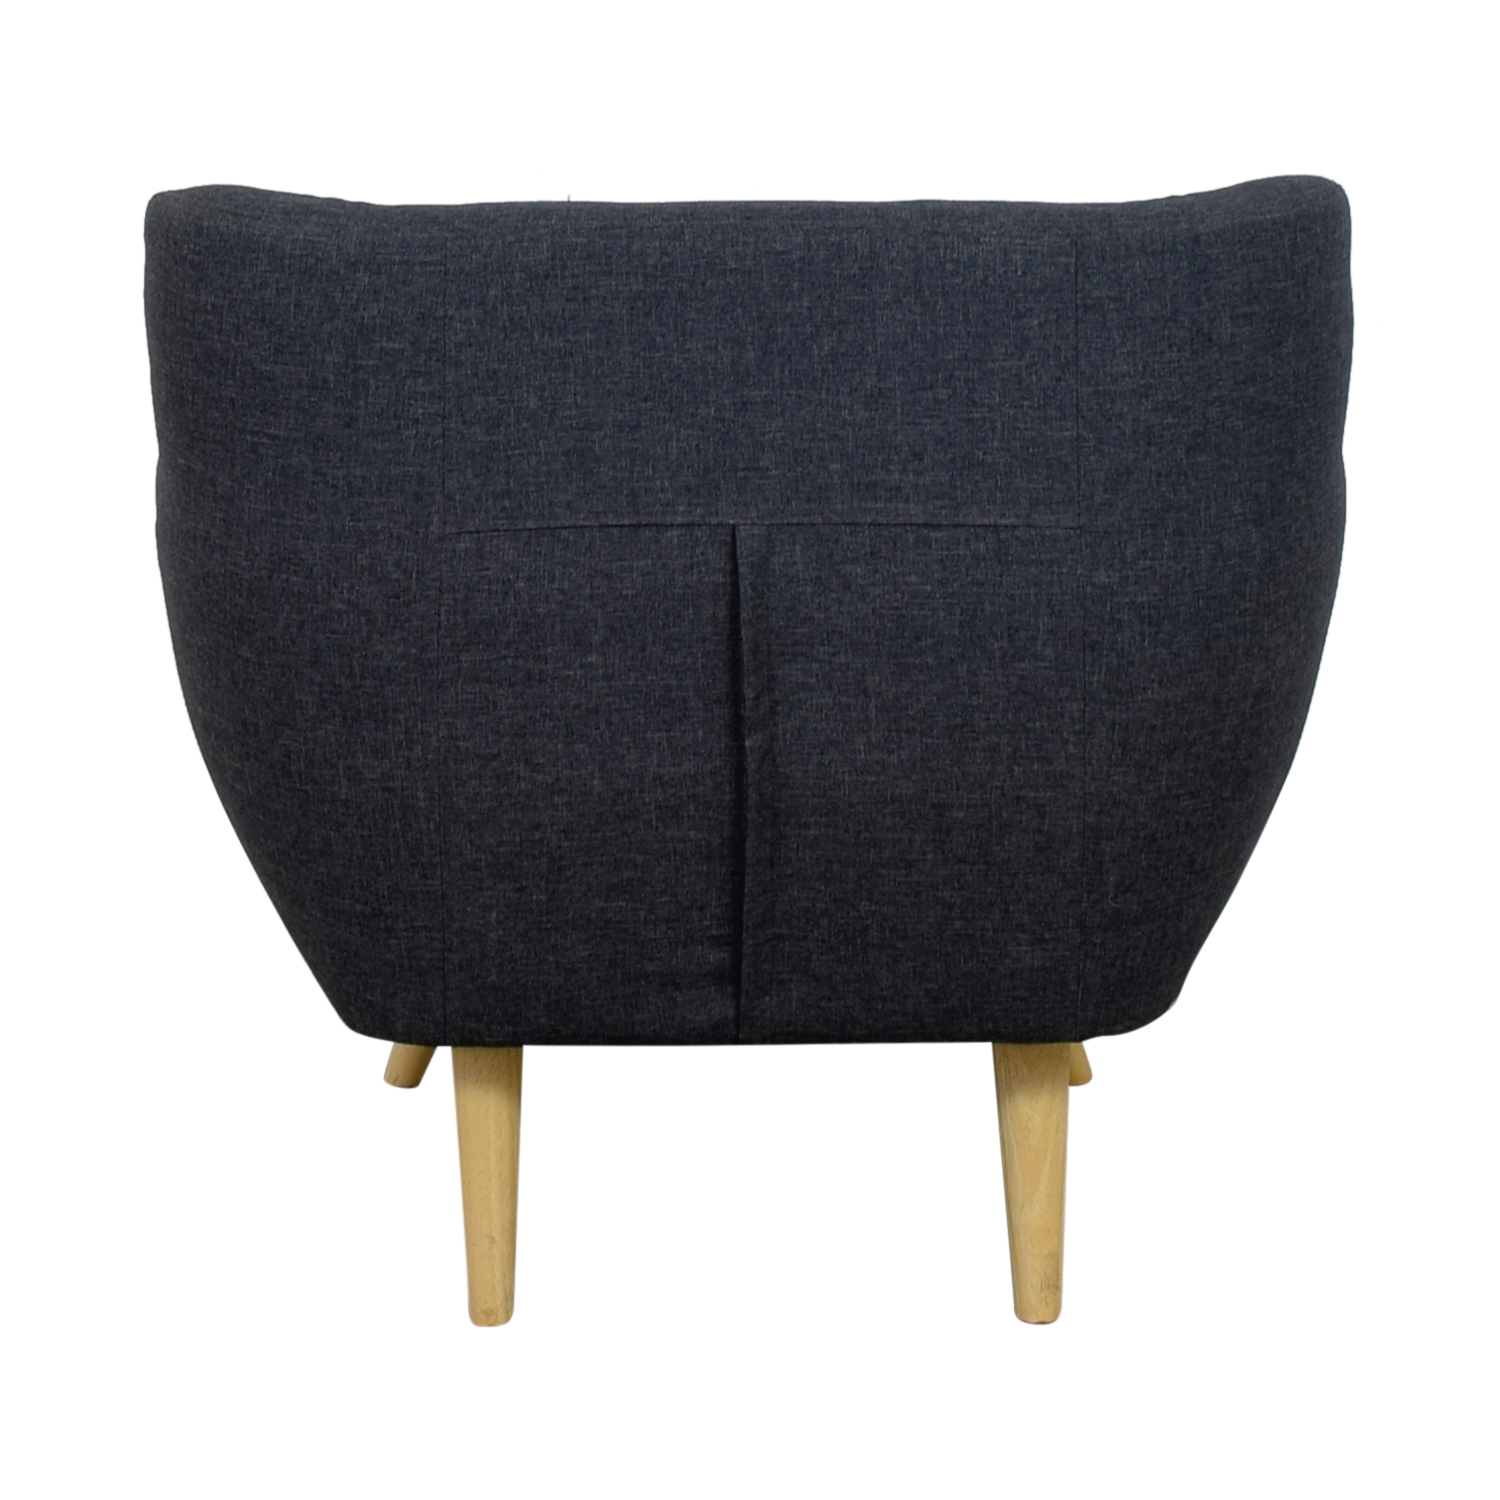 shop Modway Mid Century Accent Chair with Multi-Colored Tuft Buttons Modway Chairs